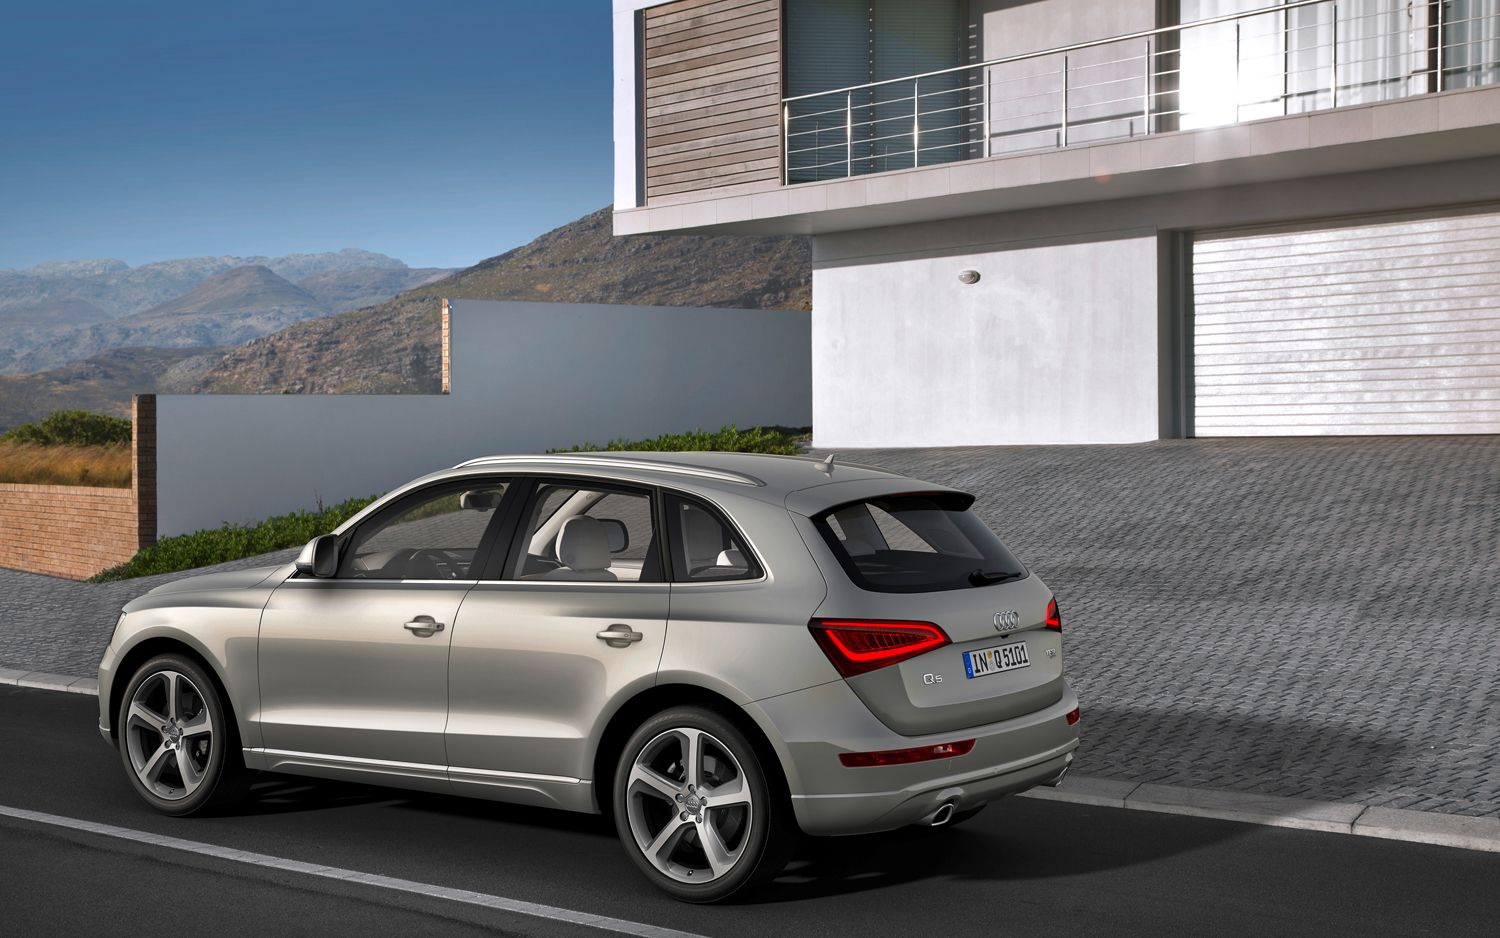 luxury car audi q5 in canada modern steel metallic different from every angles best choice for canadian audi q5 pinterest audi luxury cars